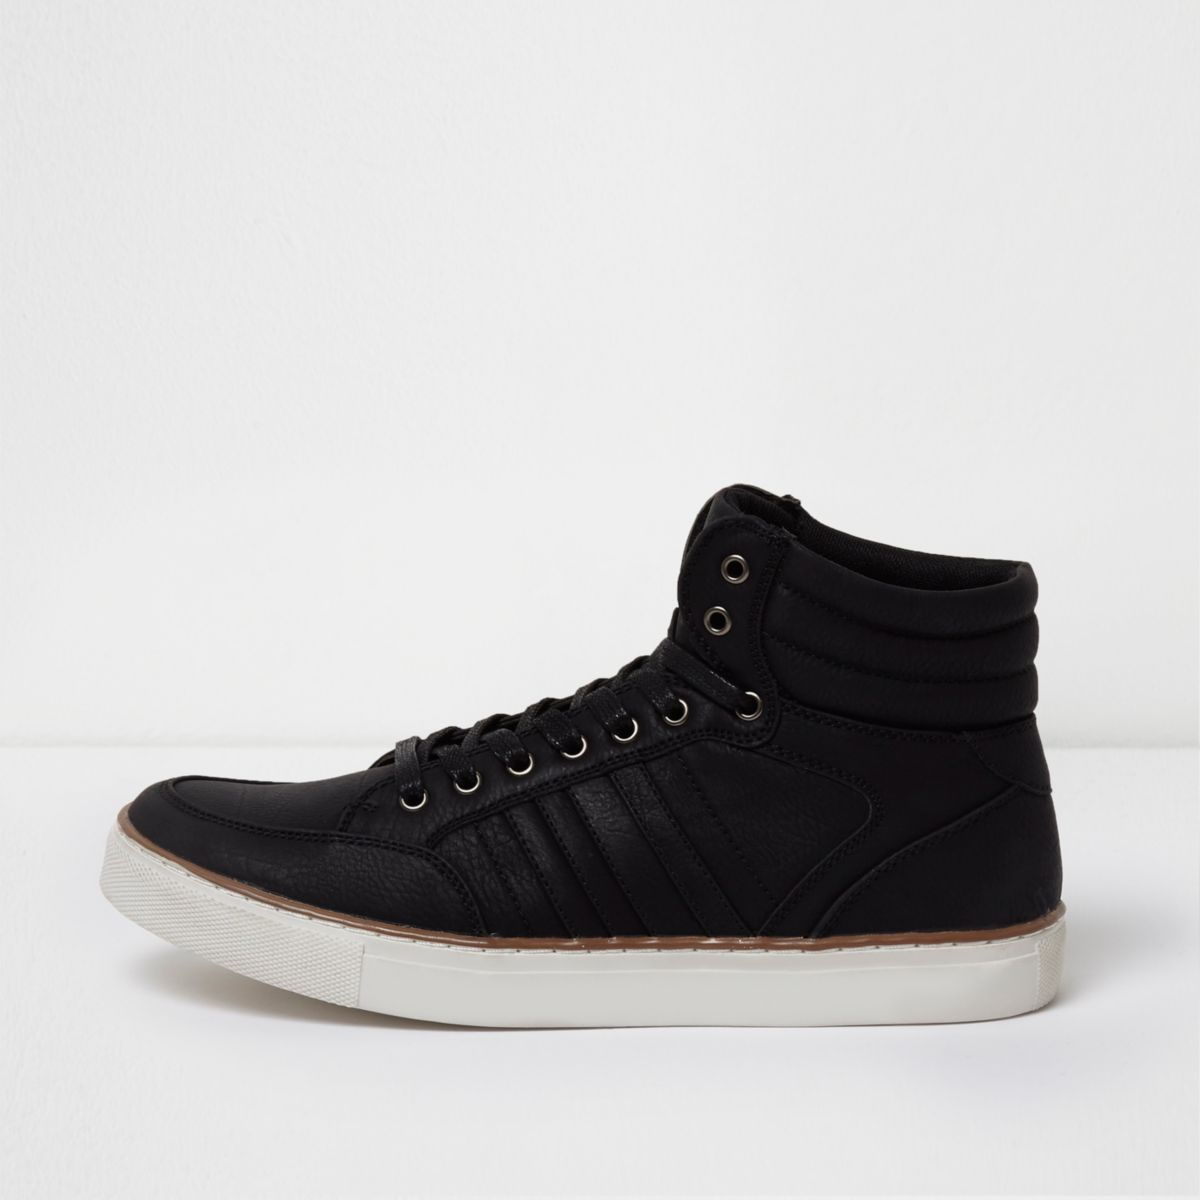 Black mid top lace-up sneakers